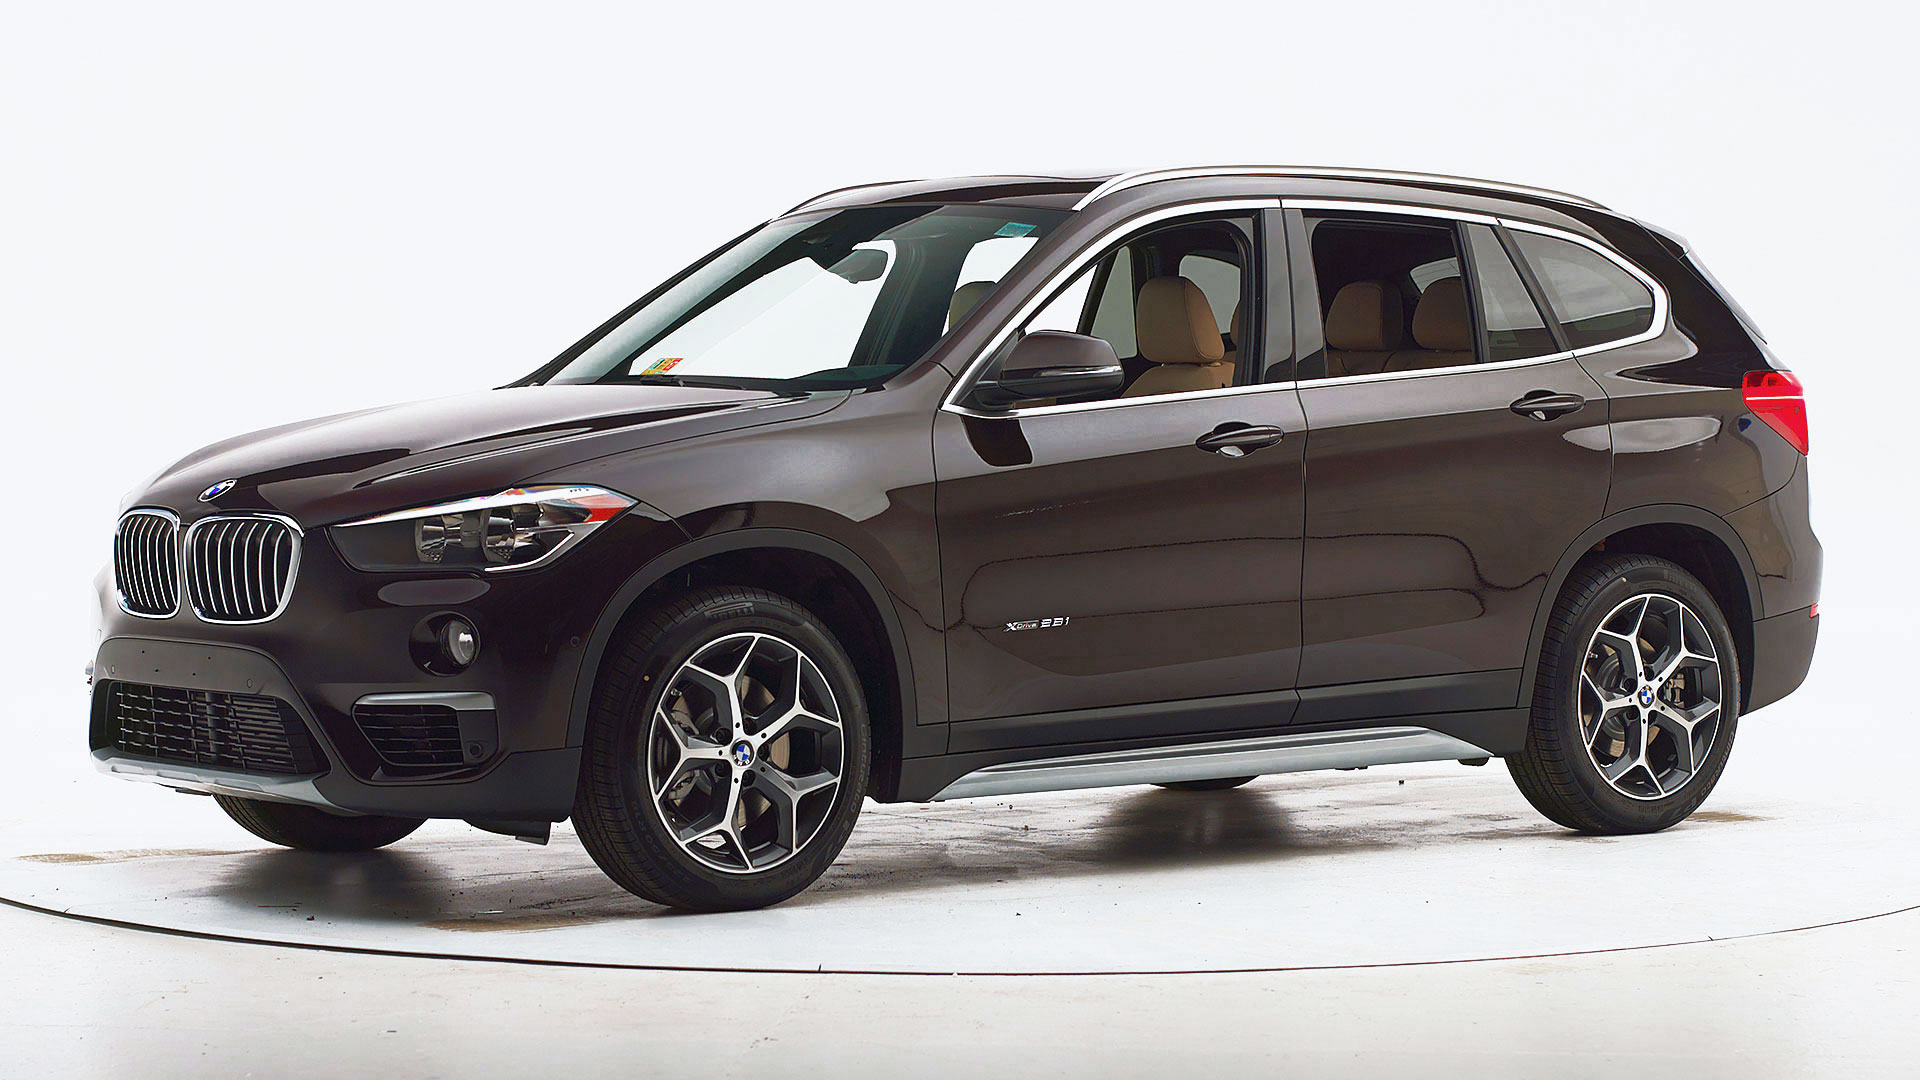 2016 BMW X1 4-door SUV